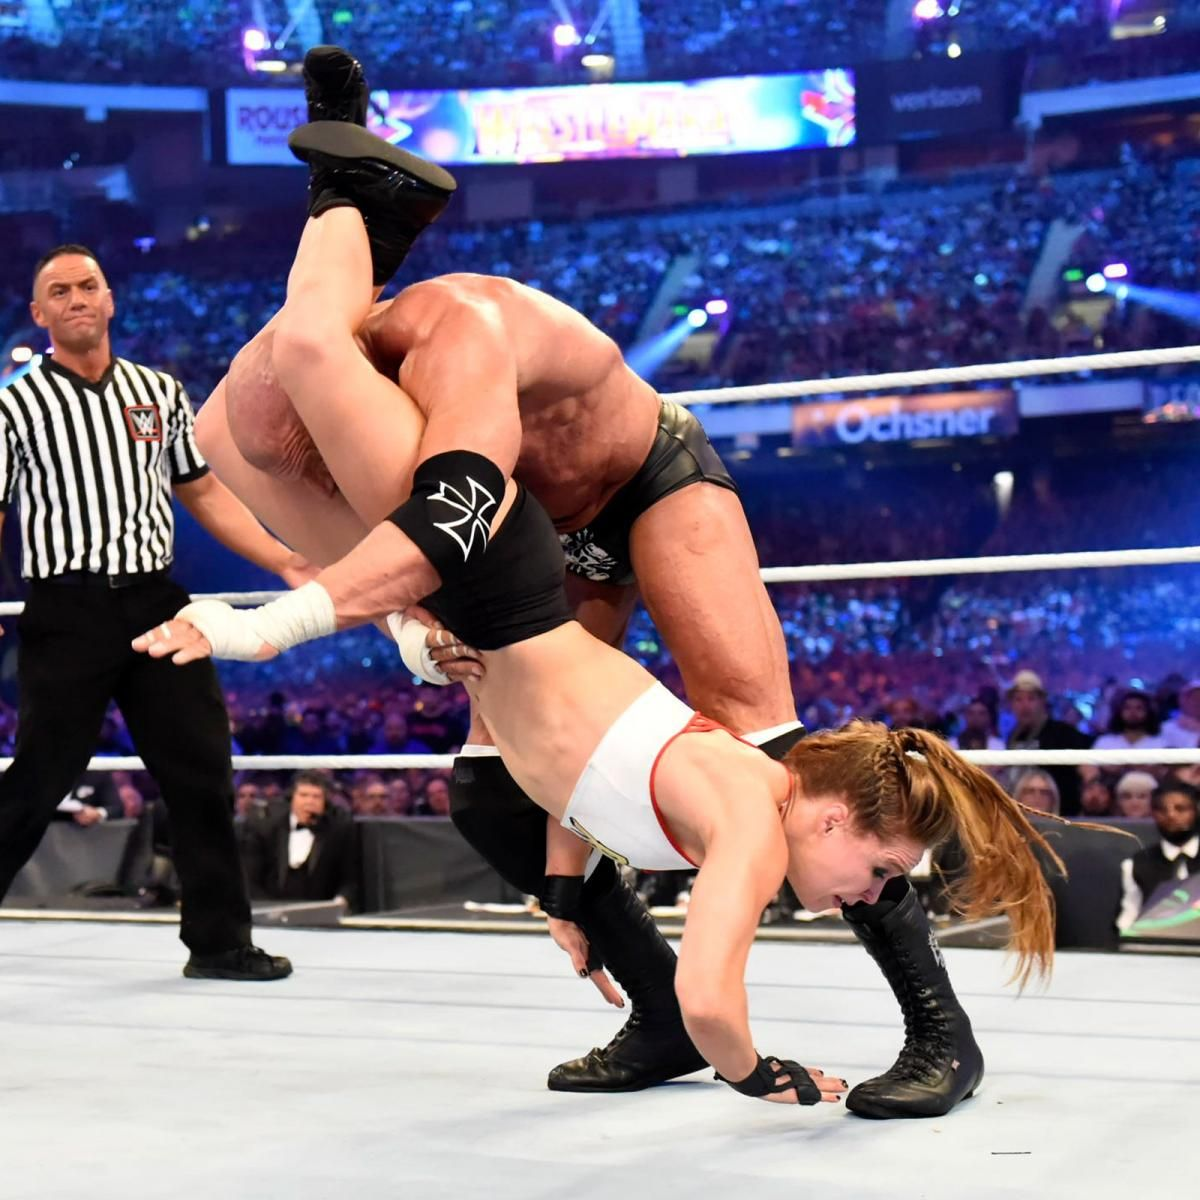 Rousey wastes no time pulling Stephanie into the ring for